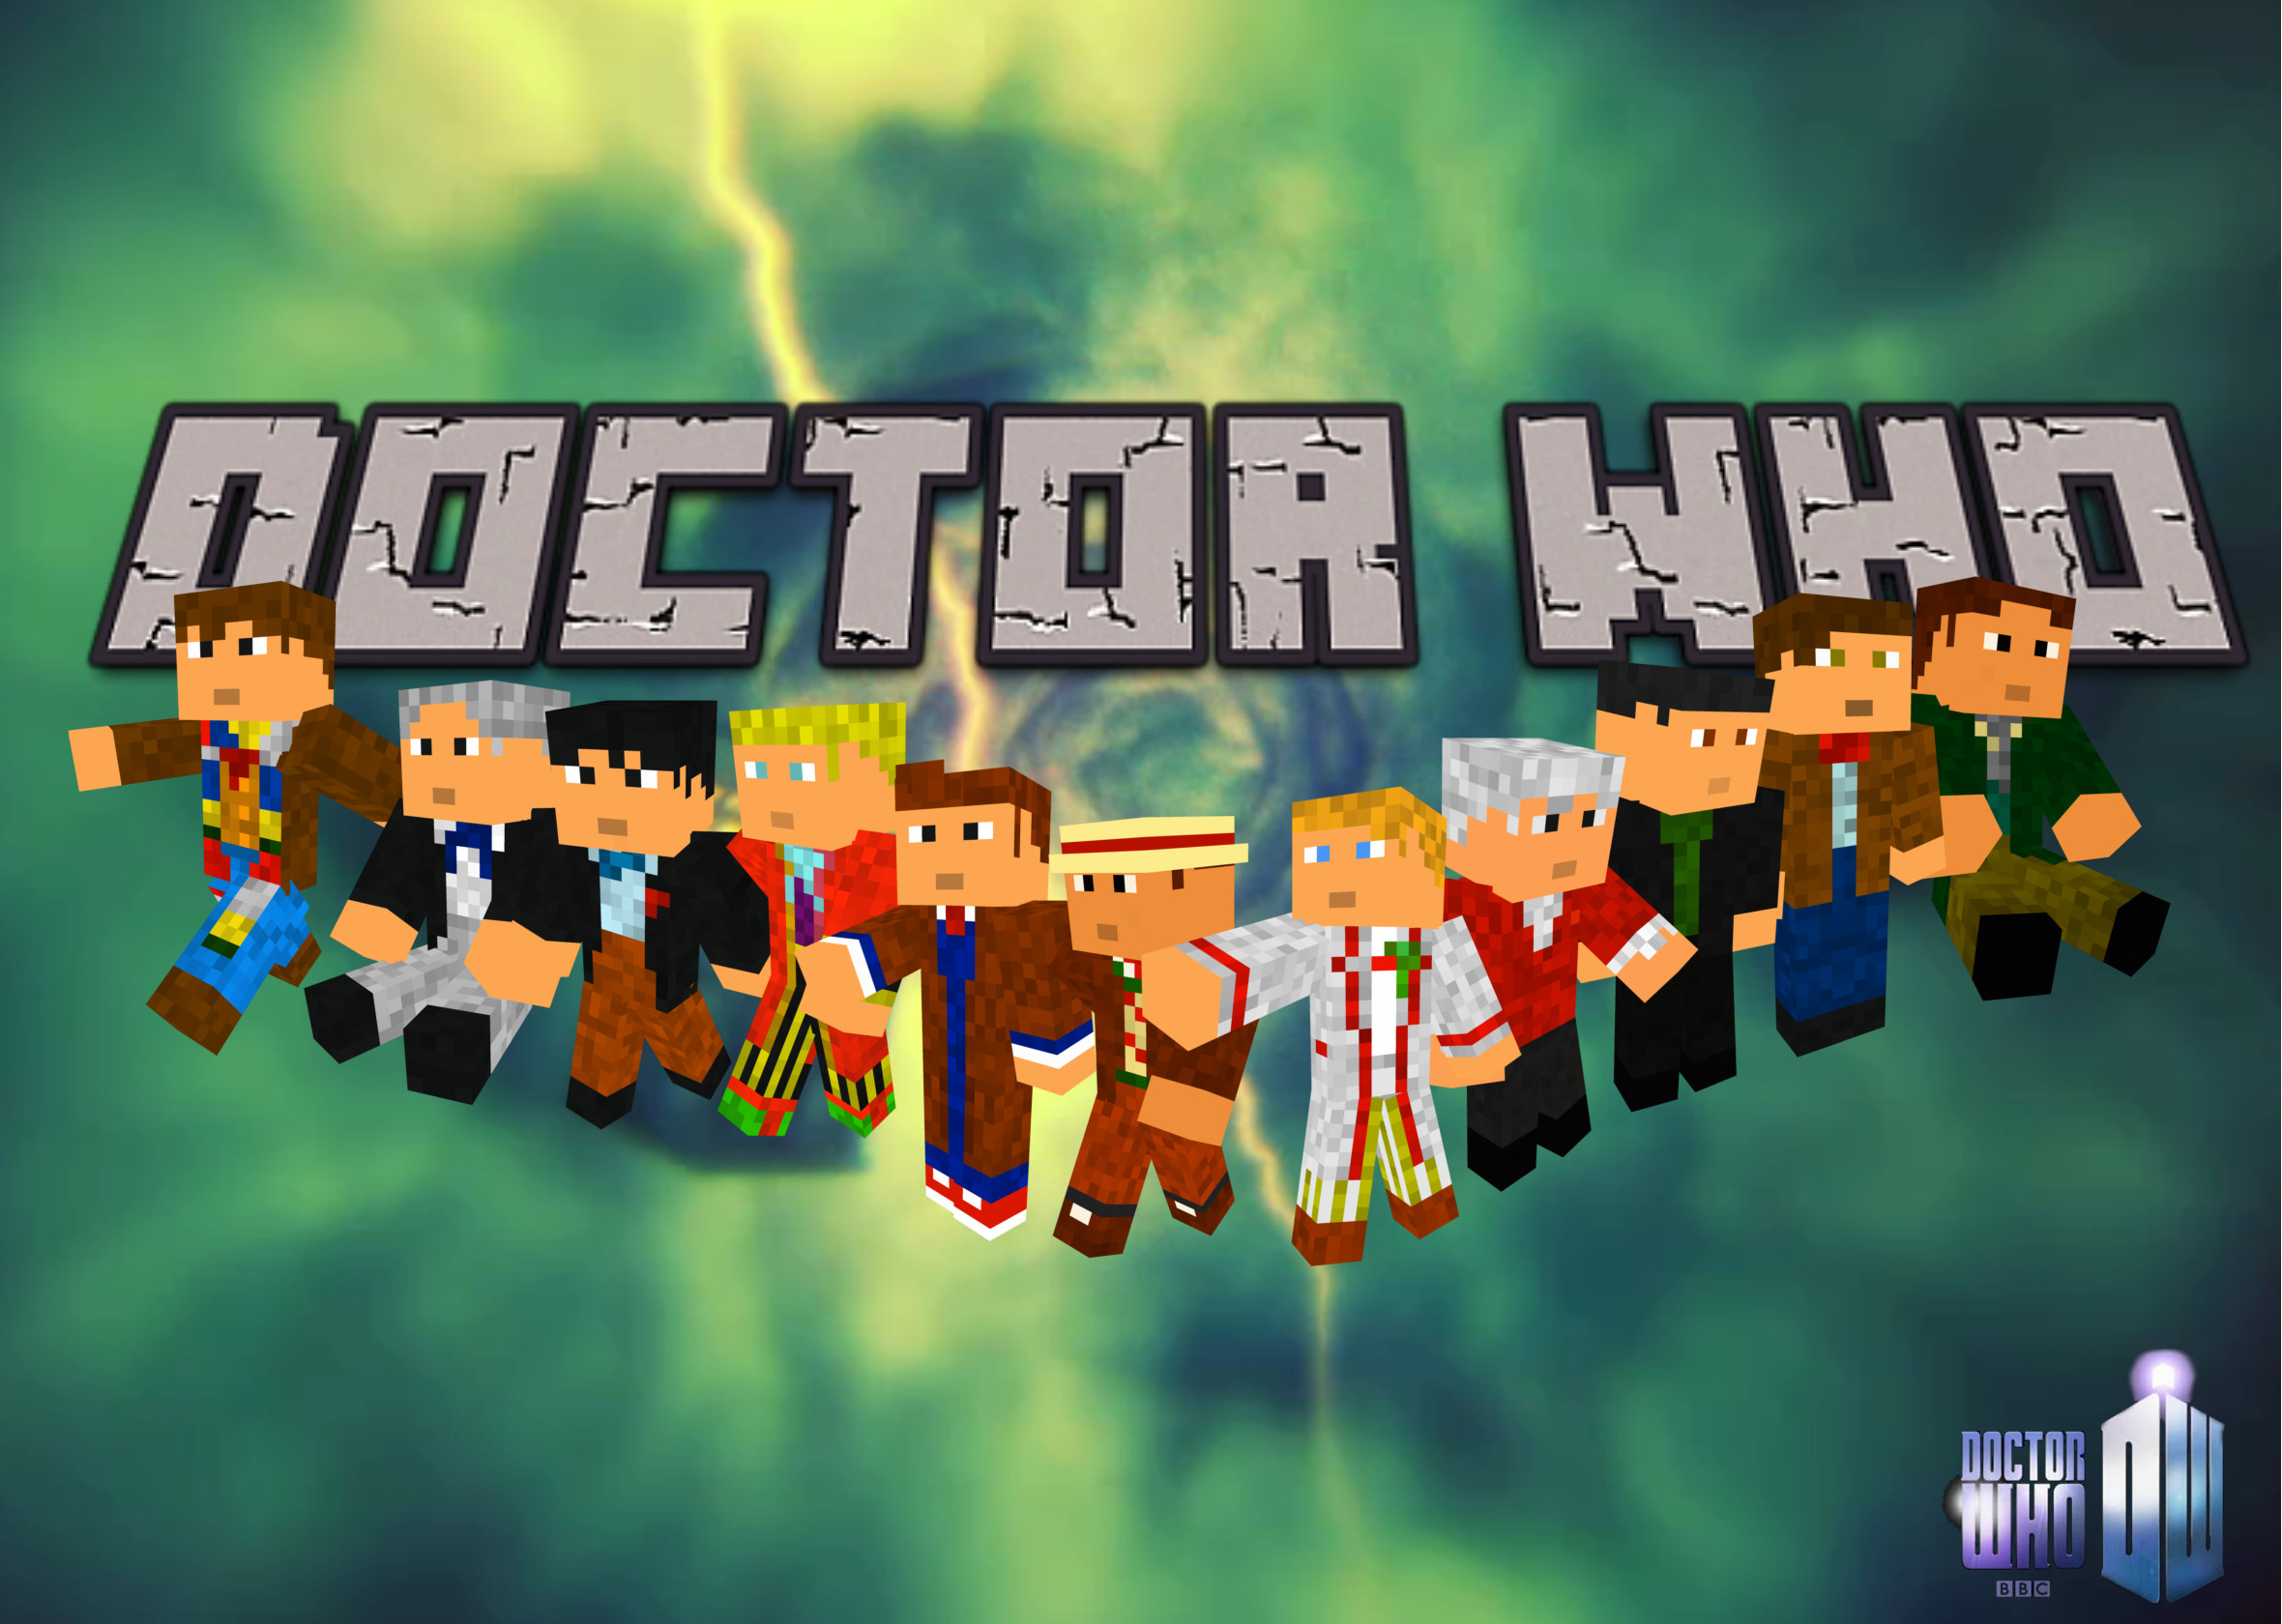 2360x1680 Doctor Who Minecraft Wallpaper by Captainpikachu Doctor Who Minecraft  Wallpaper by Captainpikachu